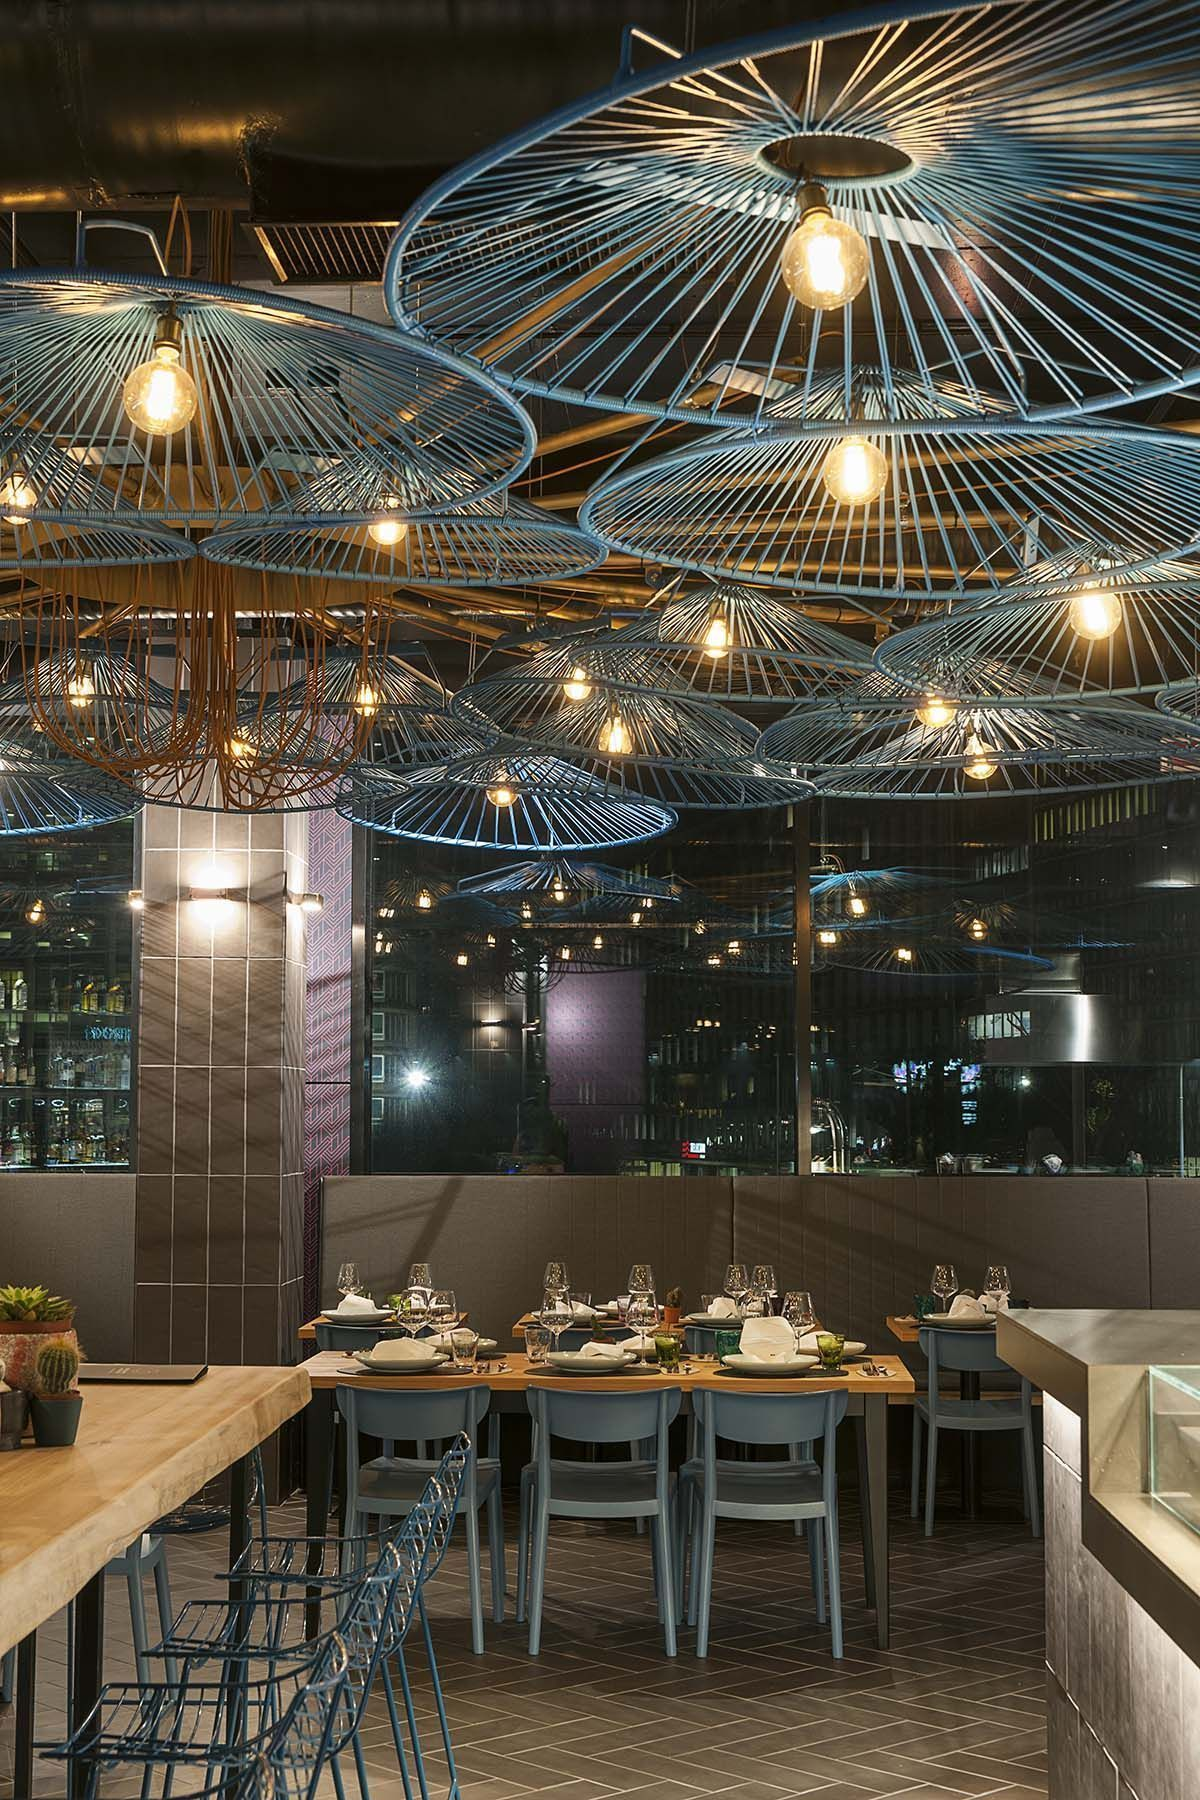 Find In Our Collection The Perfect Lamp For Your Luxury Restaurant Interior Design Pro Bar Interior Design Restaurant Interior Design Interior Design Examples